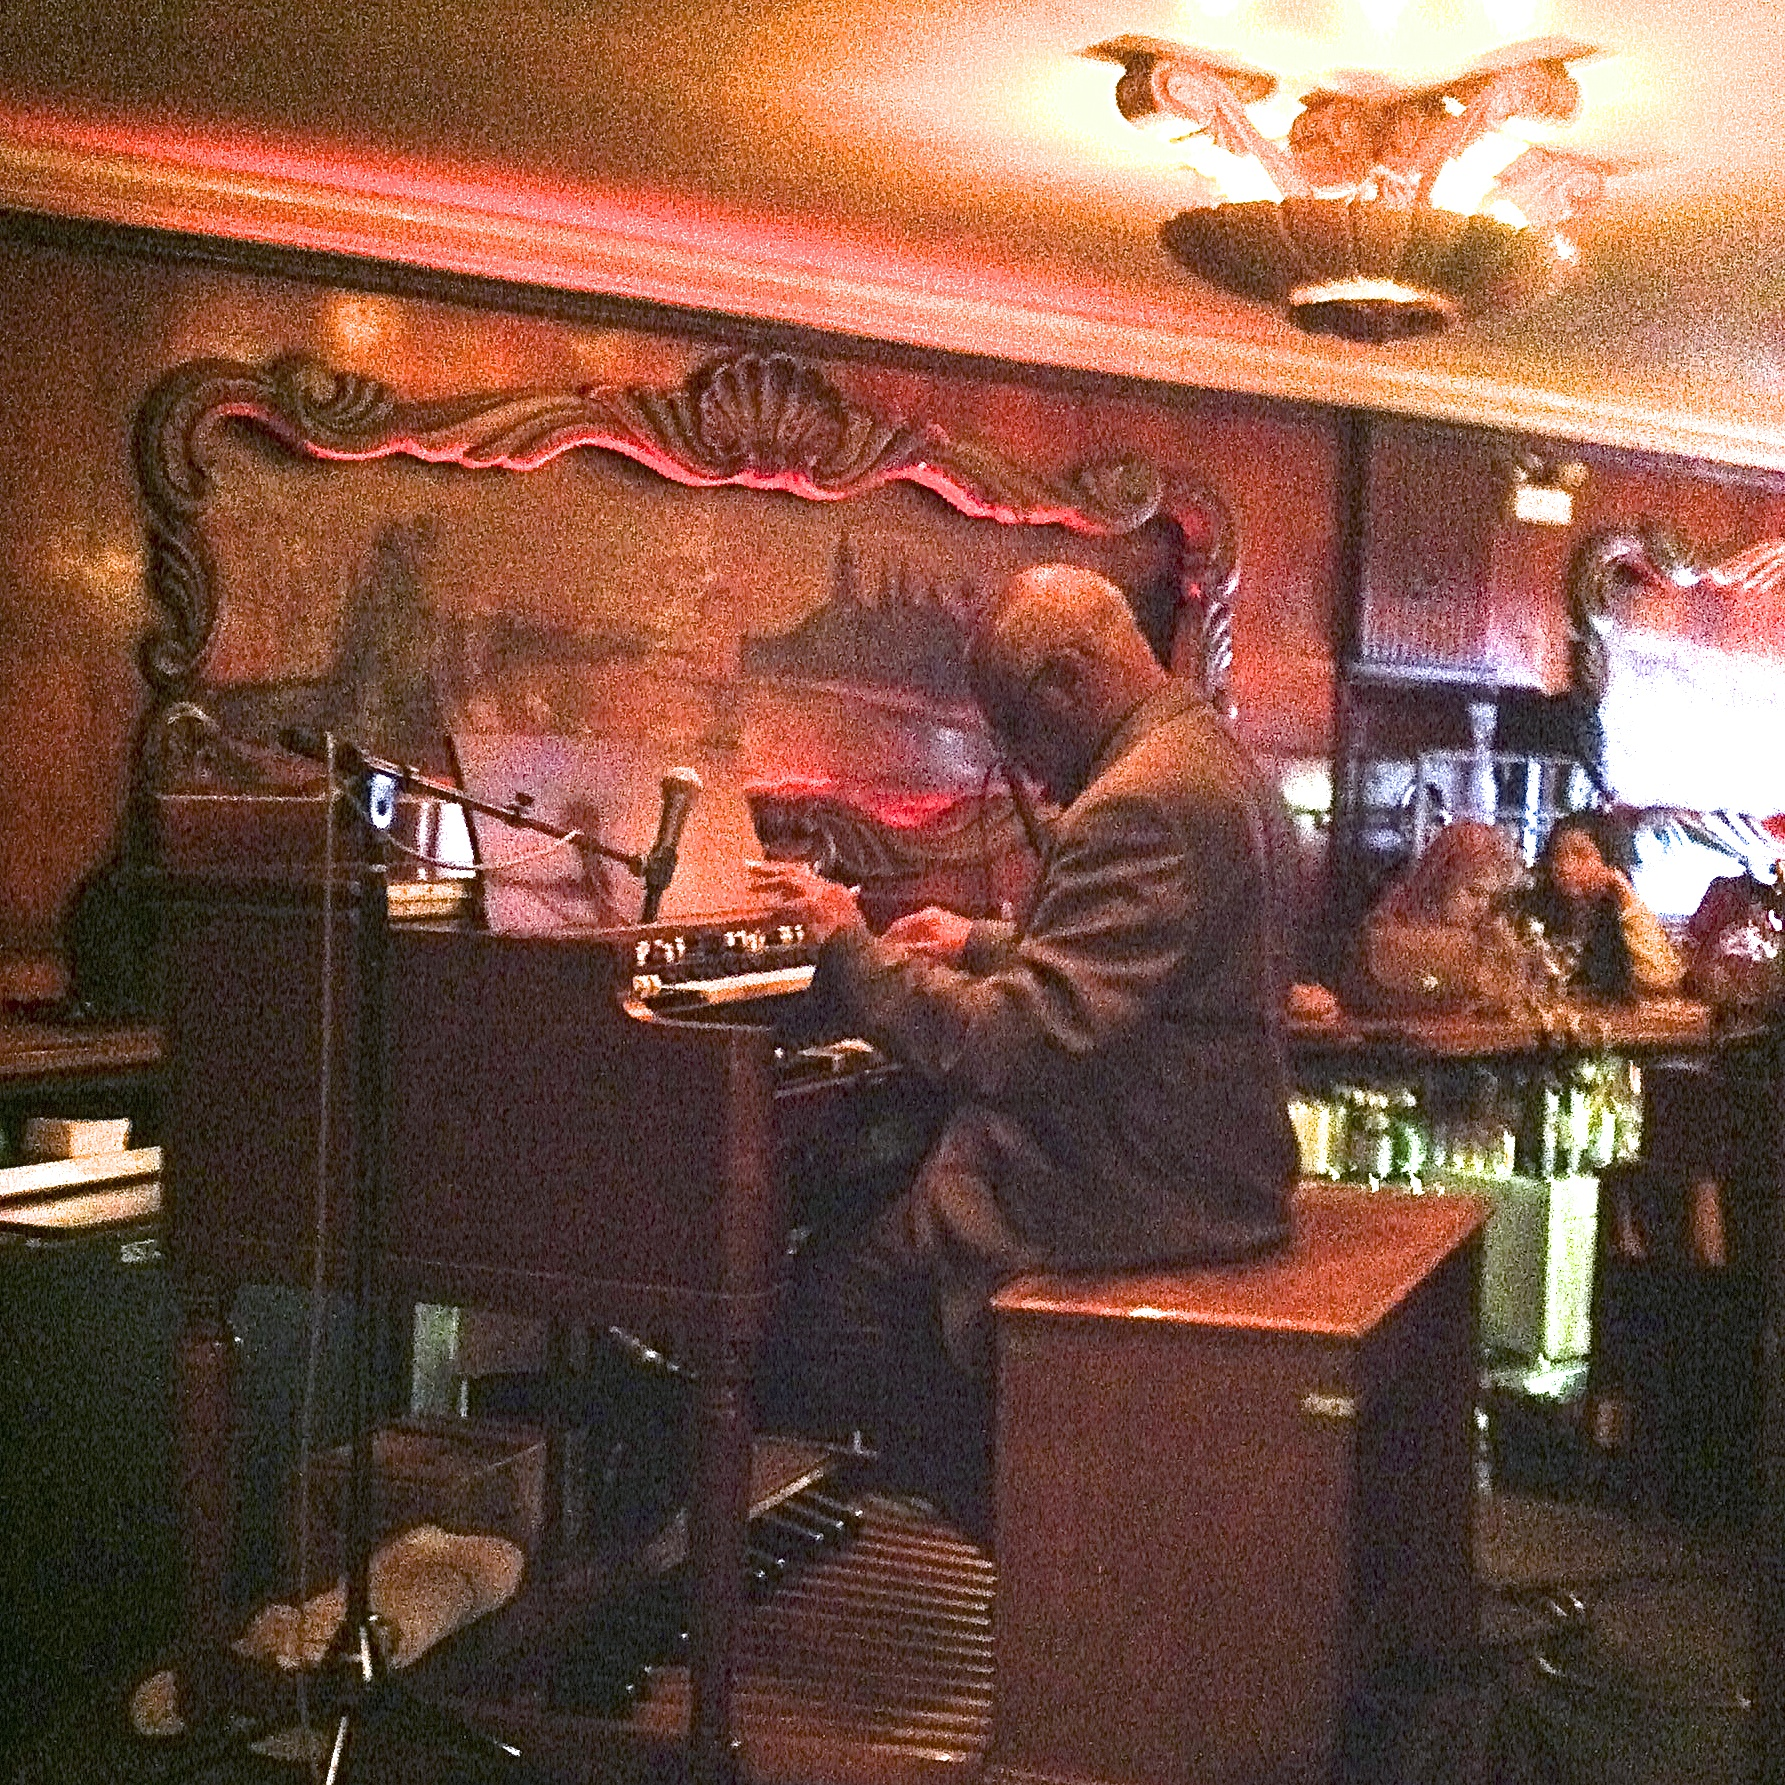 Caption: Chris Foreman at the Hammond B3